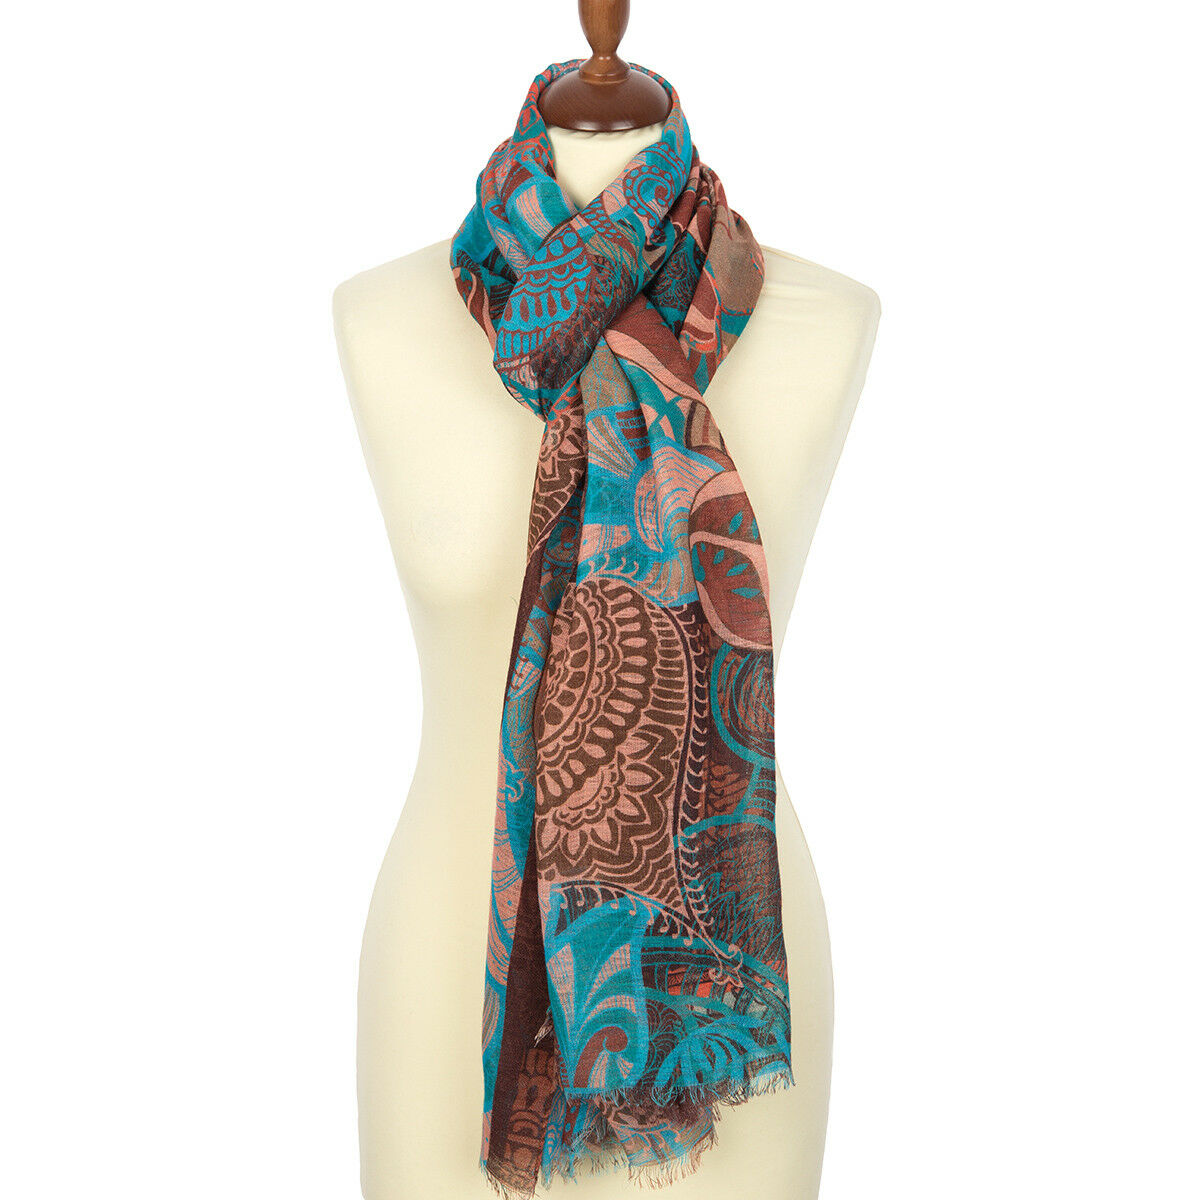 Pawlowski Possad Schal 100% Wolle. Wolle. Wolle. Snood, Stole, Pashmina weiblich 230x80 cm 94a4d4